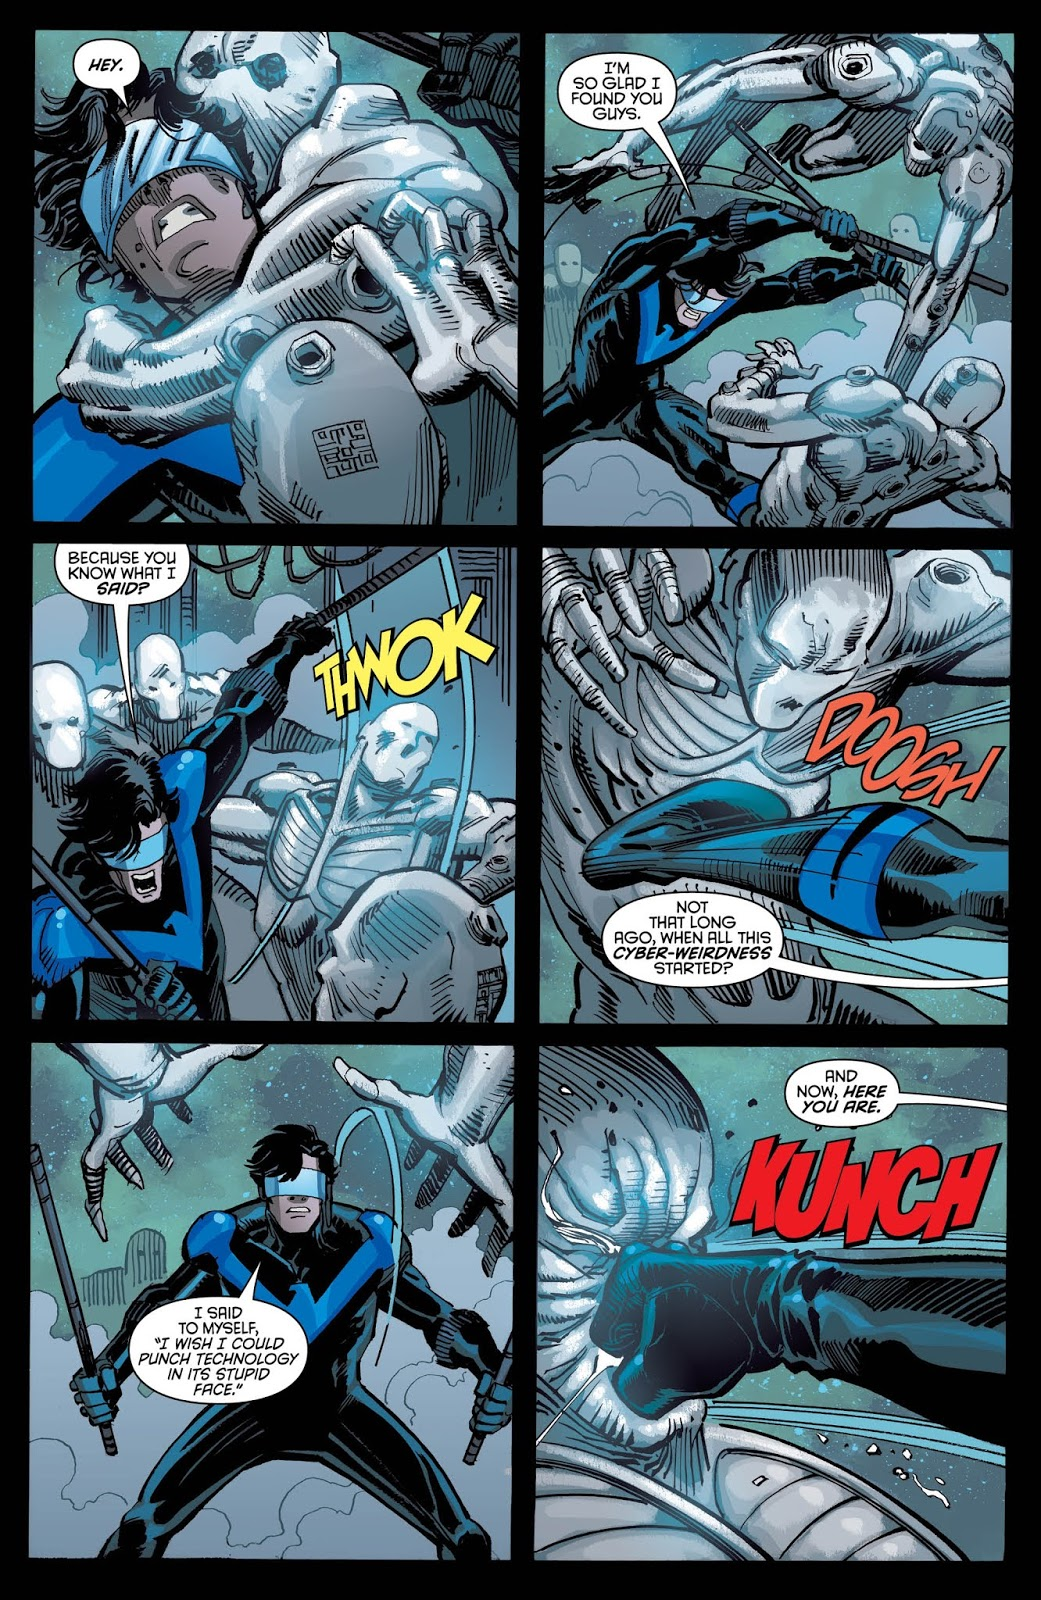 NIGHTWING #47 Page 3. Image Courtesy of DC Entertainment.